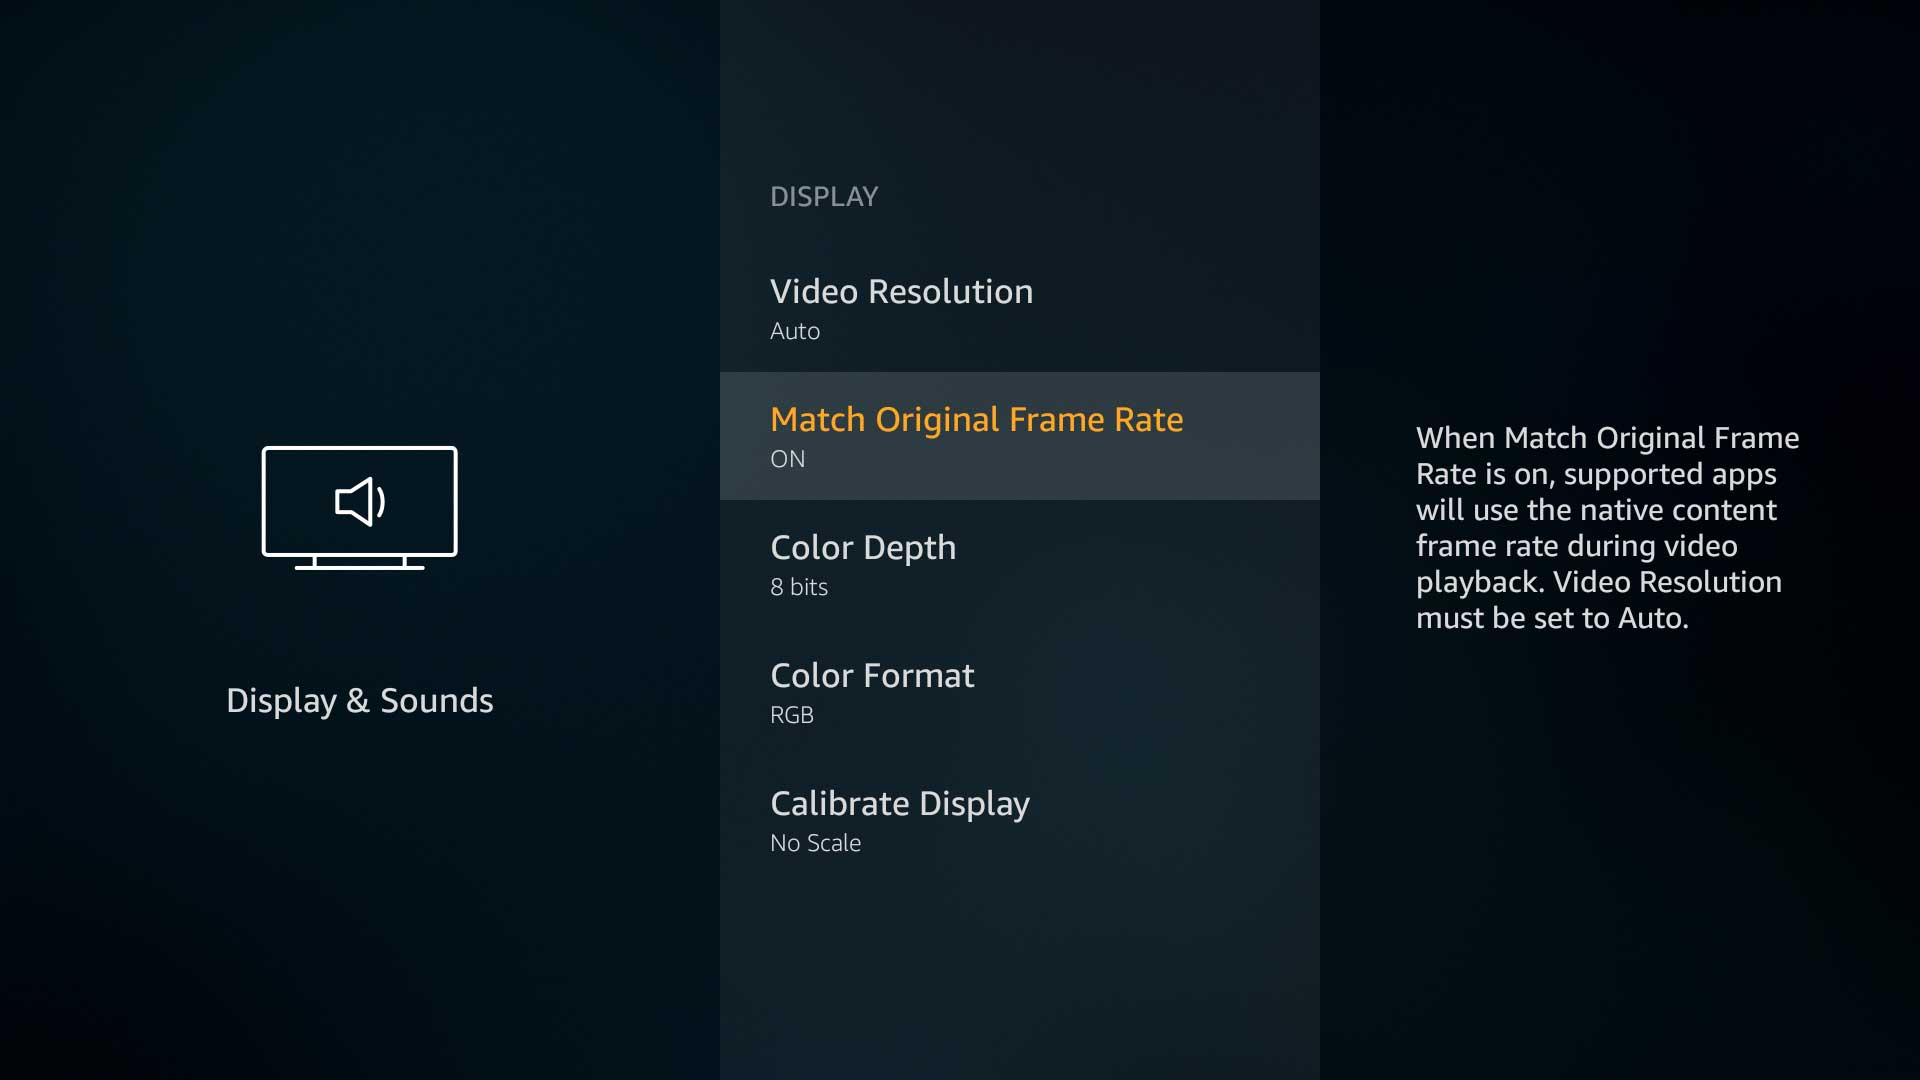 Explanation of the new Frame Rate Matching feature on the